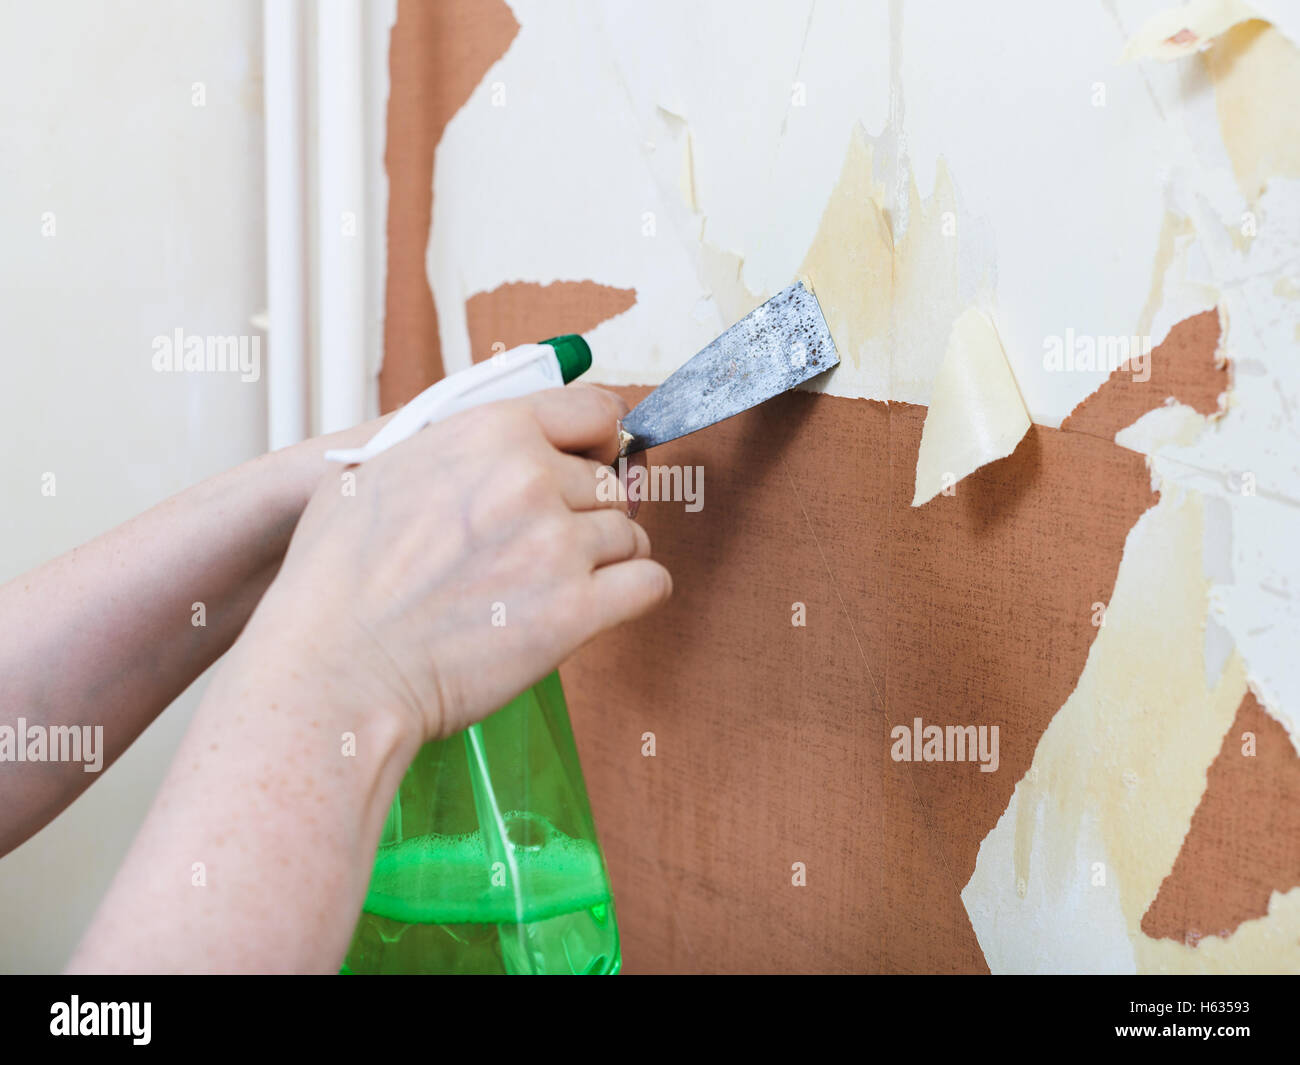 Renovation Of Apartment Wallpapering Preparation Walls Removing Old Wallpaper From Wall With Chemical Liquid Stripper